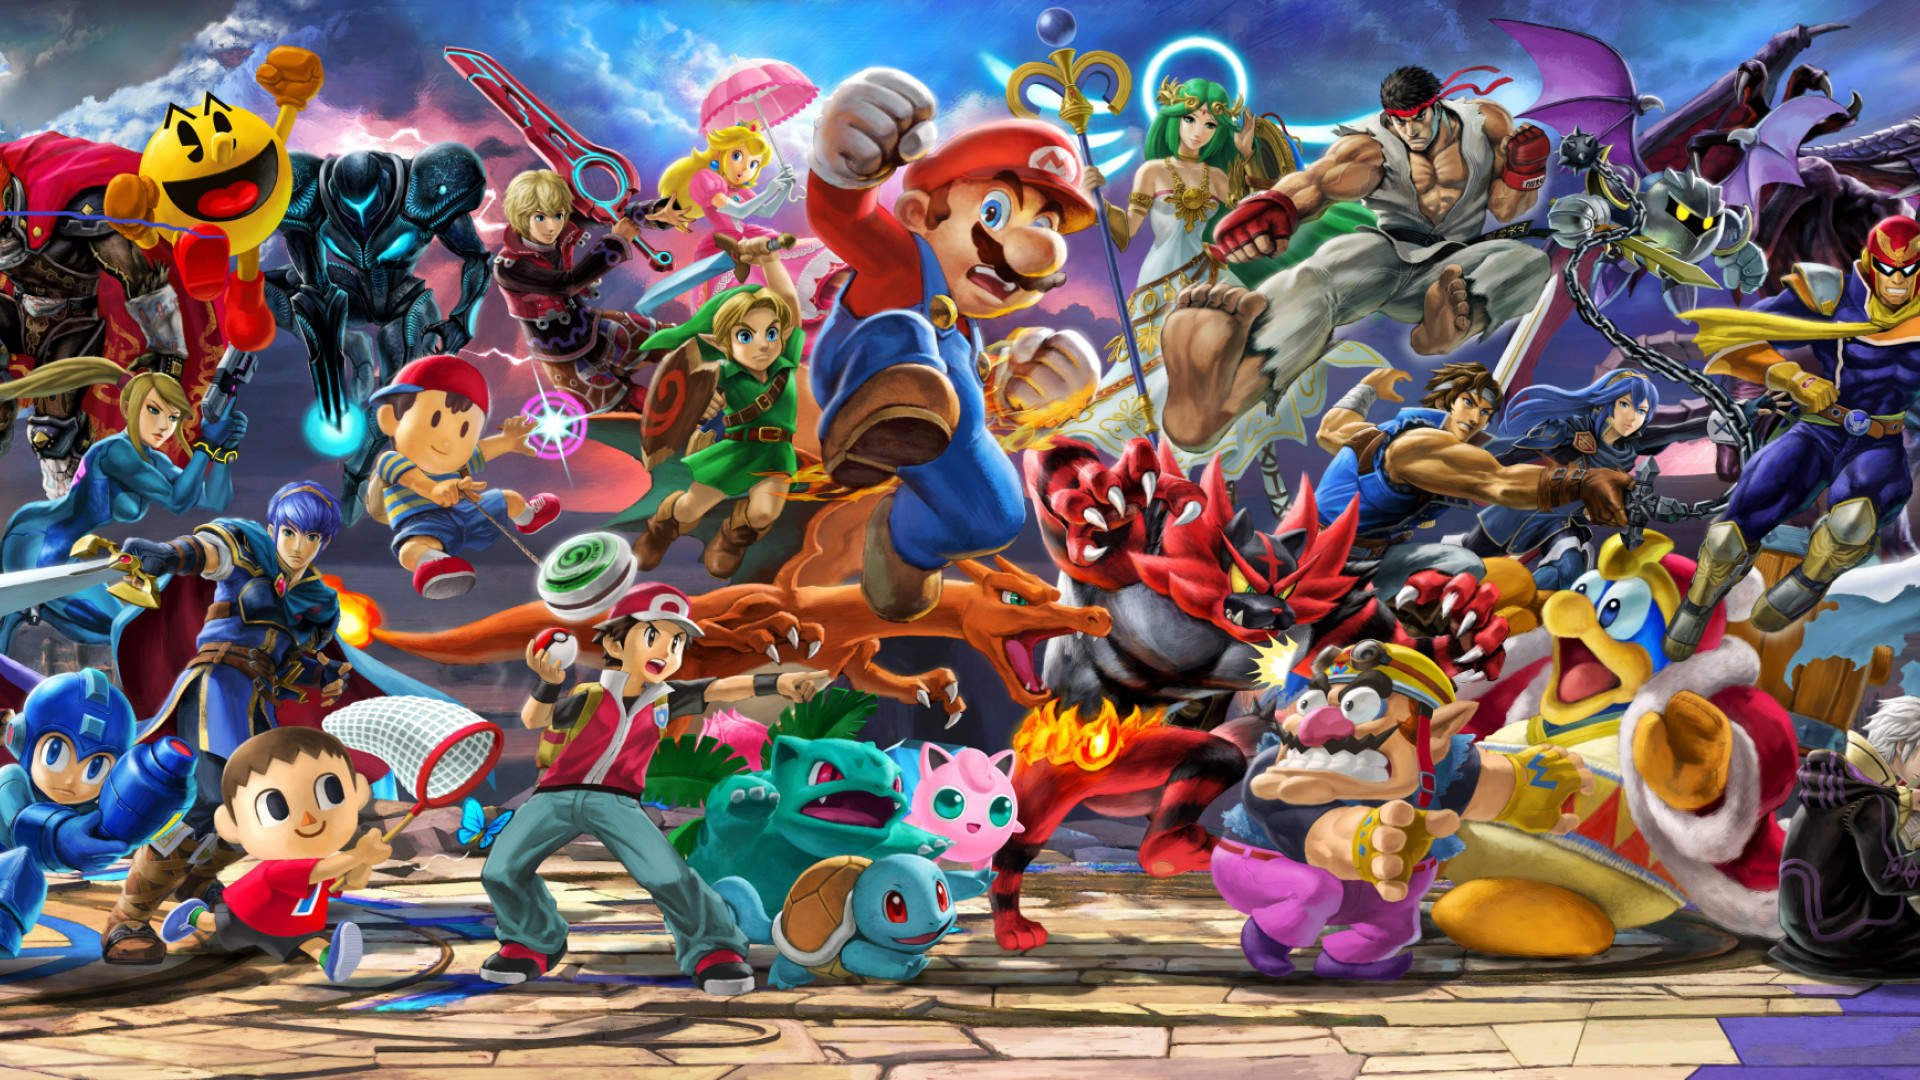 Moves For Super Smash Bros Characters Moves Need To Change